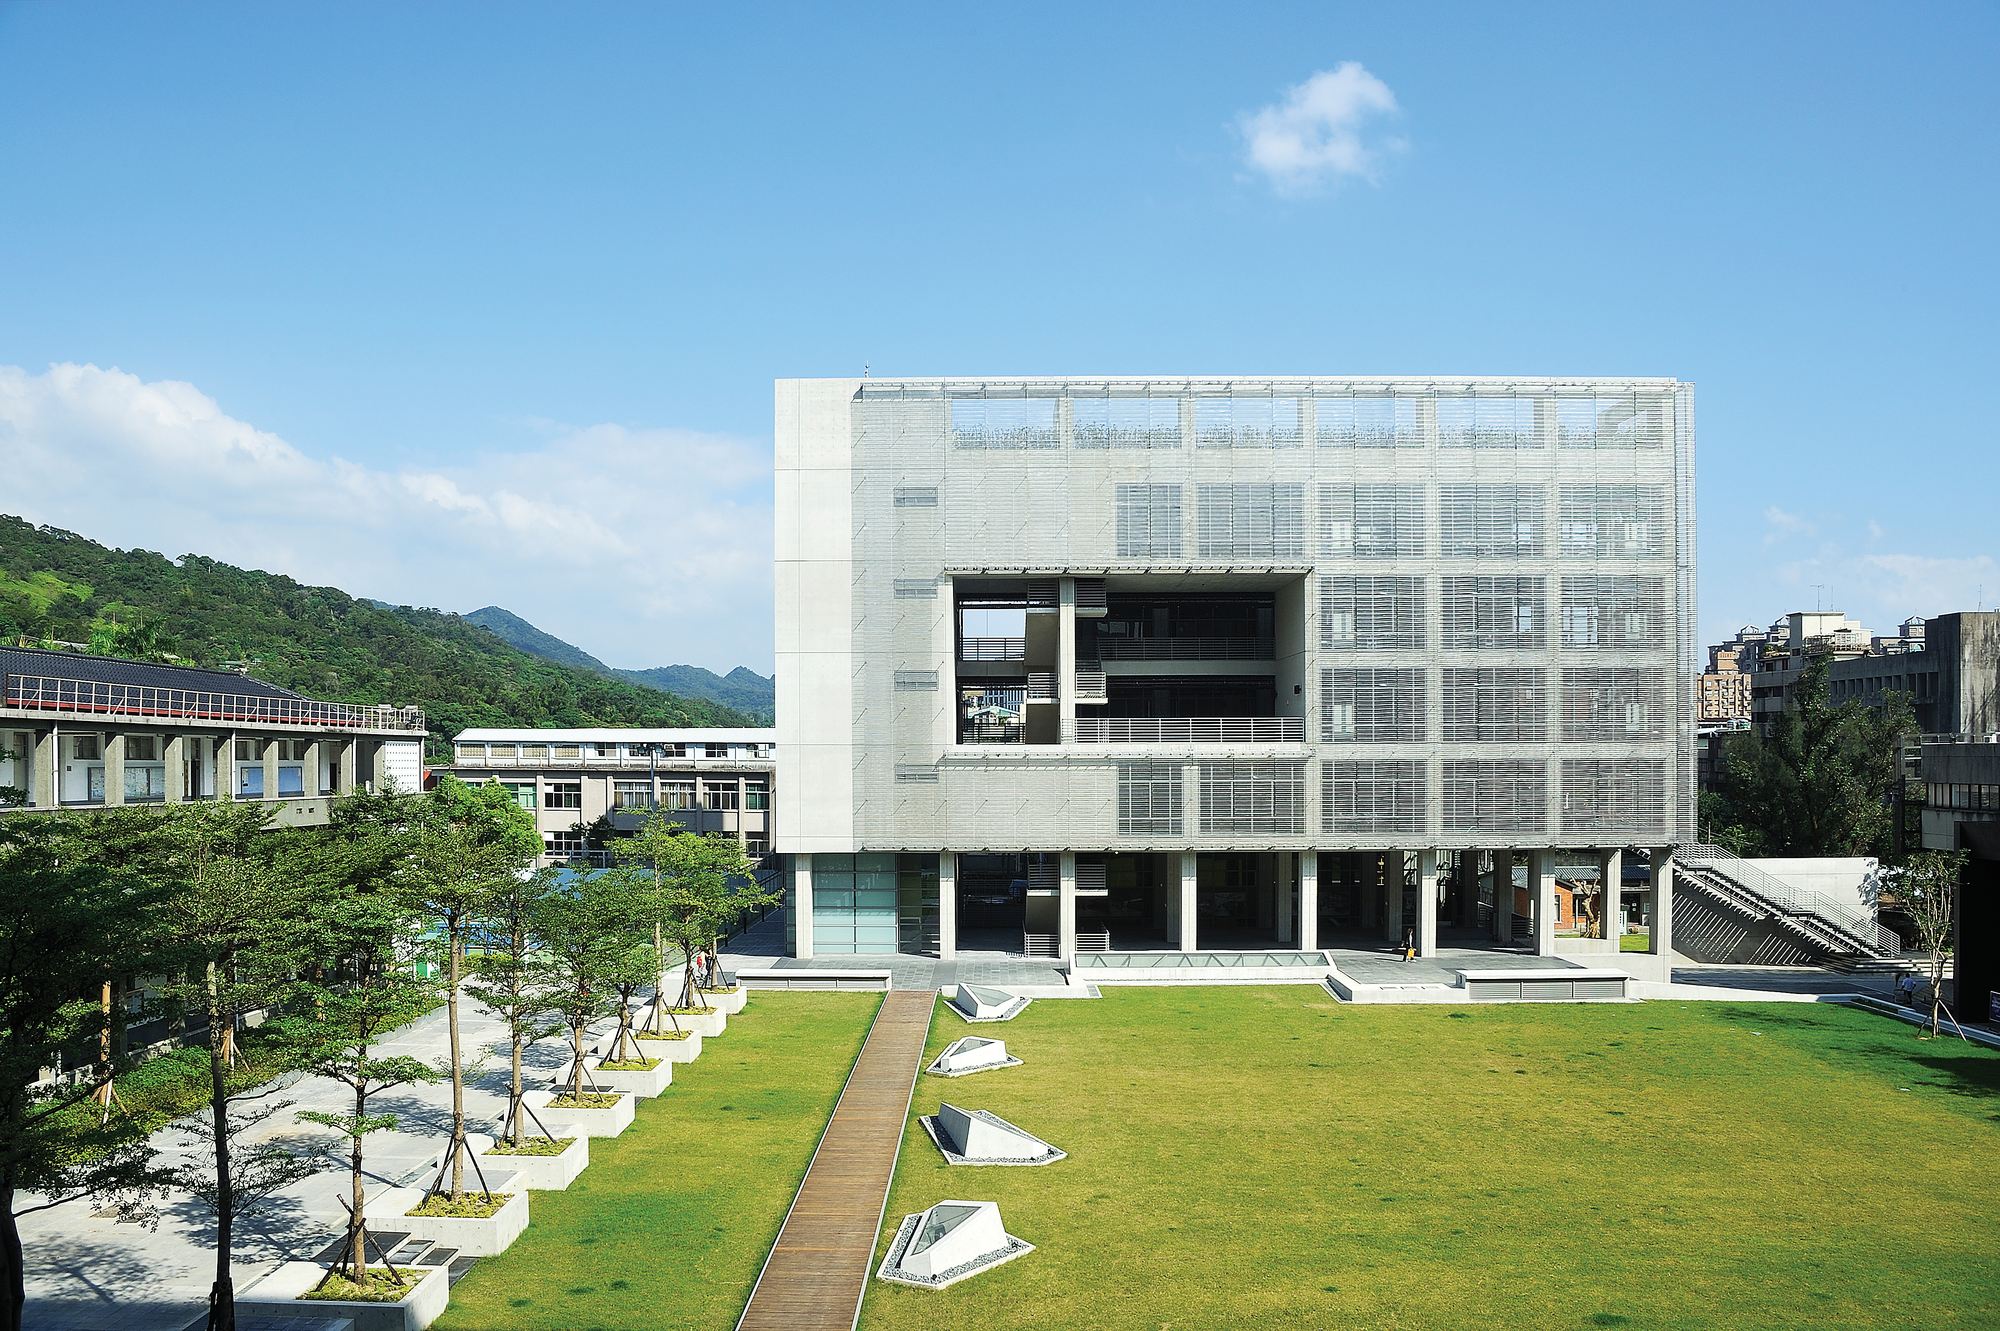 Shih Chien University Gymnasium and Library / Kris Yao | Artech Architects